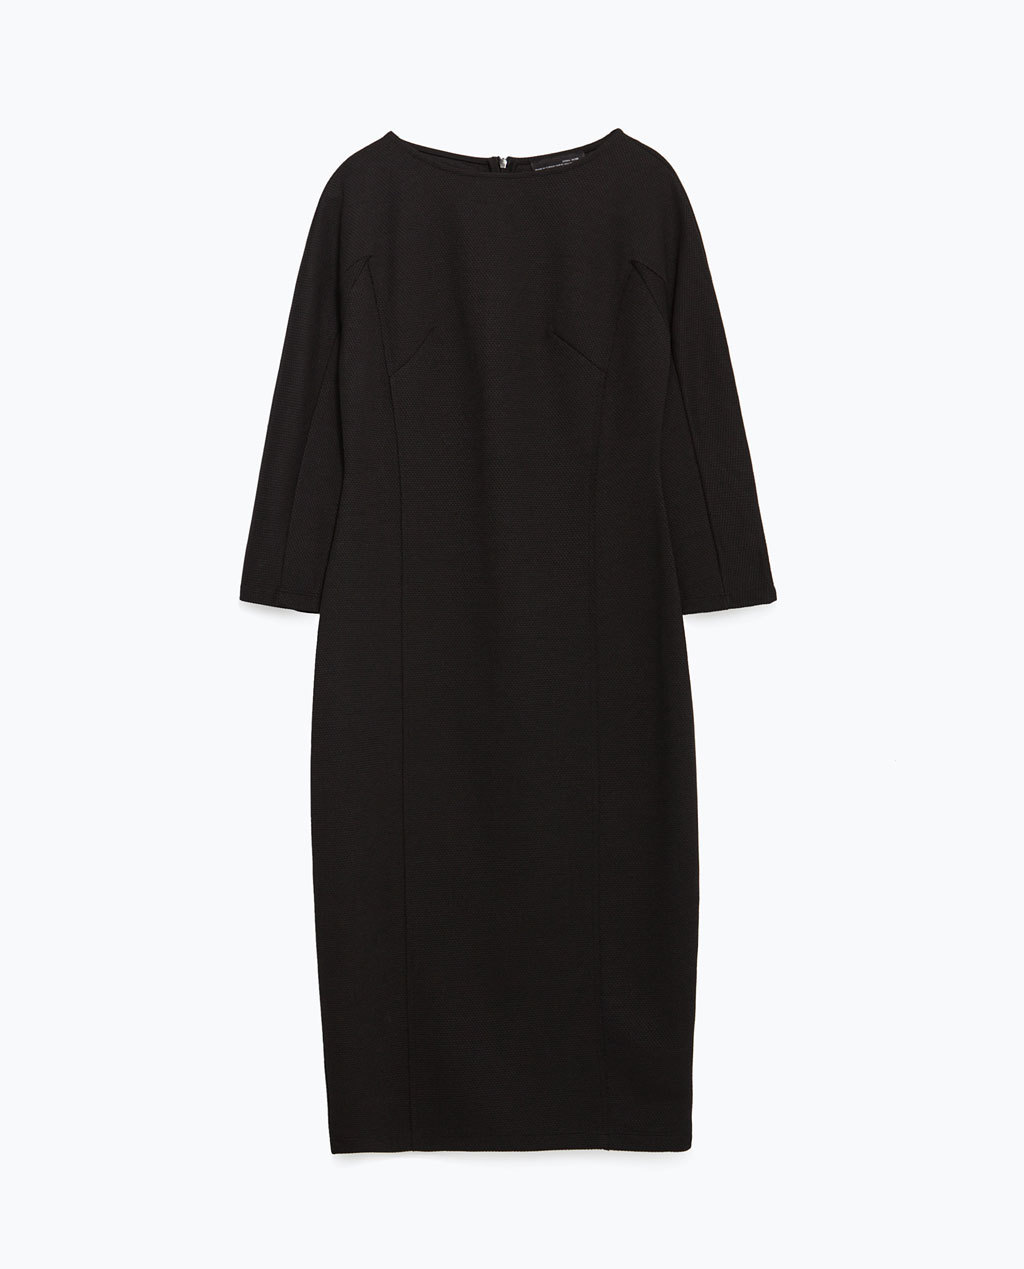 Long Tube Dress - style: shift; neckline: round neck; pattern: plain; predominant colour: black; occasions: evening, work; length: just above the knee; fit: body skimming; fibres: polyester/polyamide - 100%; sleeve length: 3/4 length; sleeve style: standard; pattern type: fabric; texture group: jersey - stretchy/drapey; season: a/w 2015; wardrobe: investment